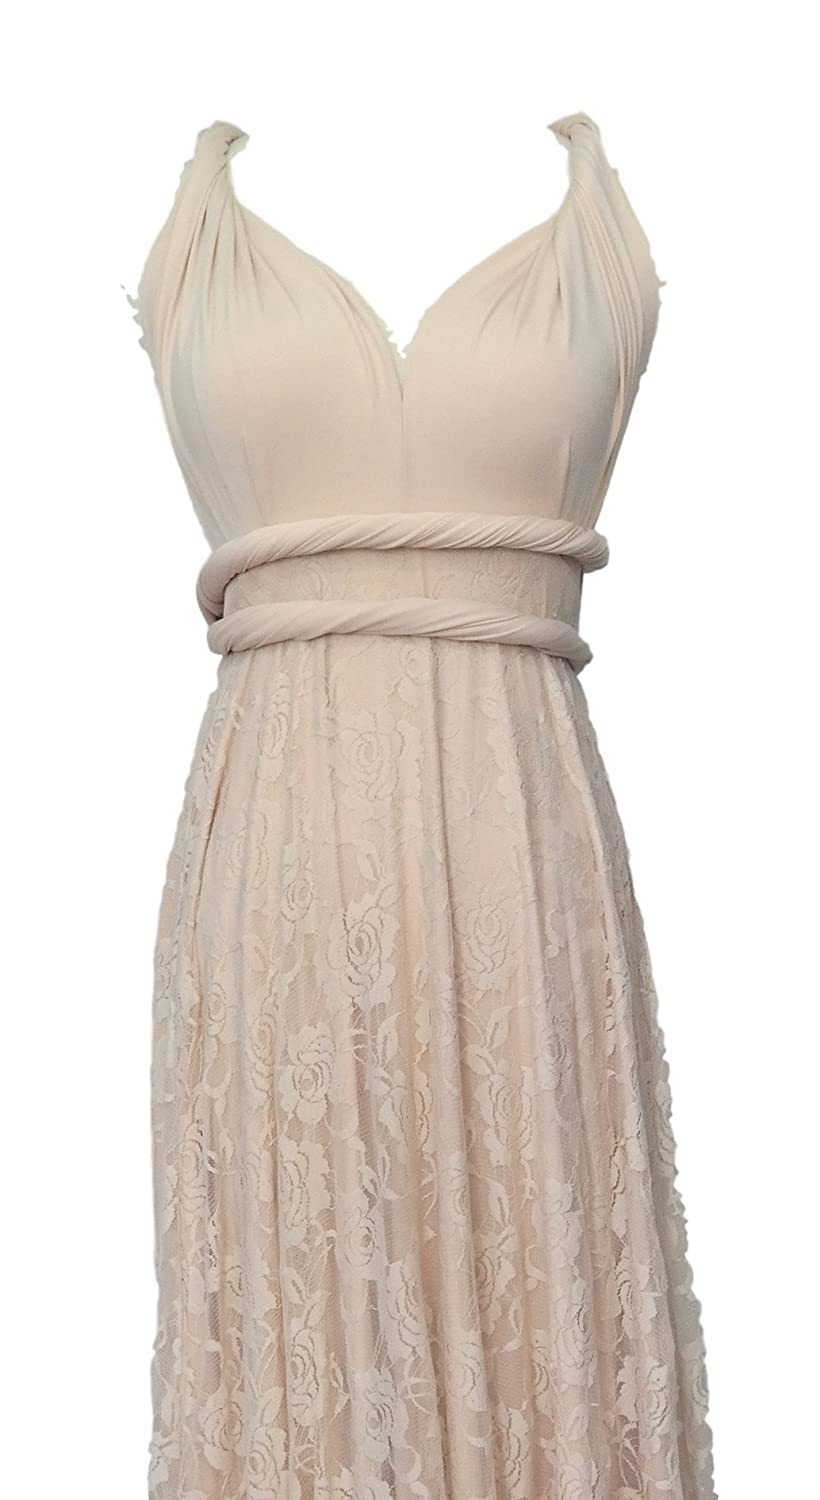 Full Length Convertible Bridesmaids Dress in Champagne with lace overlay